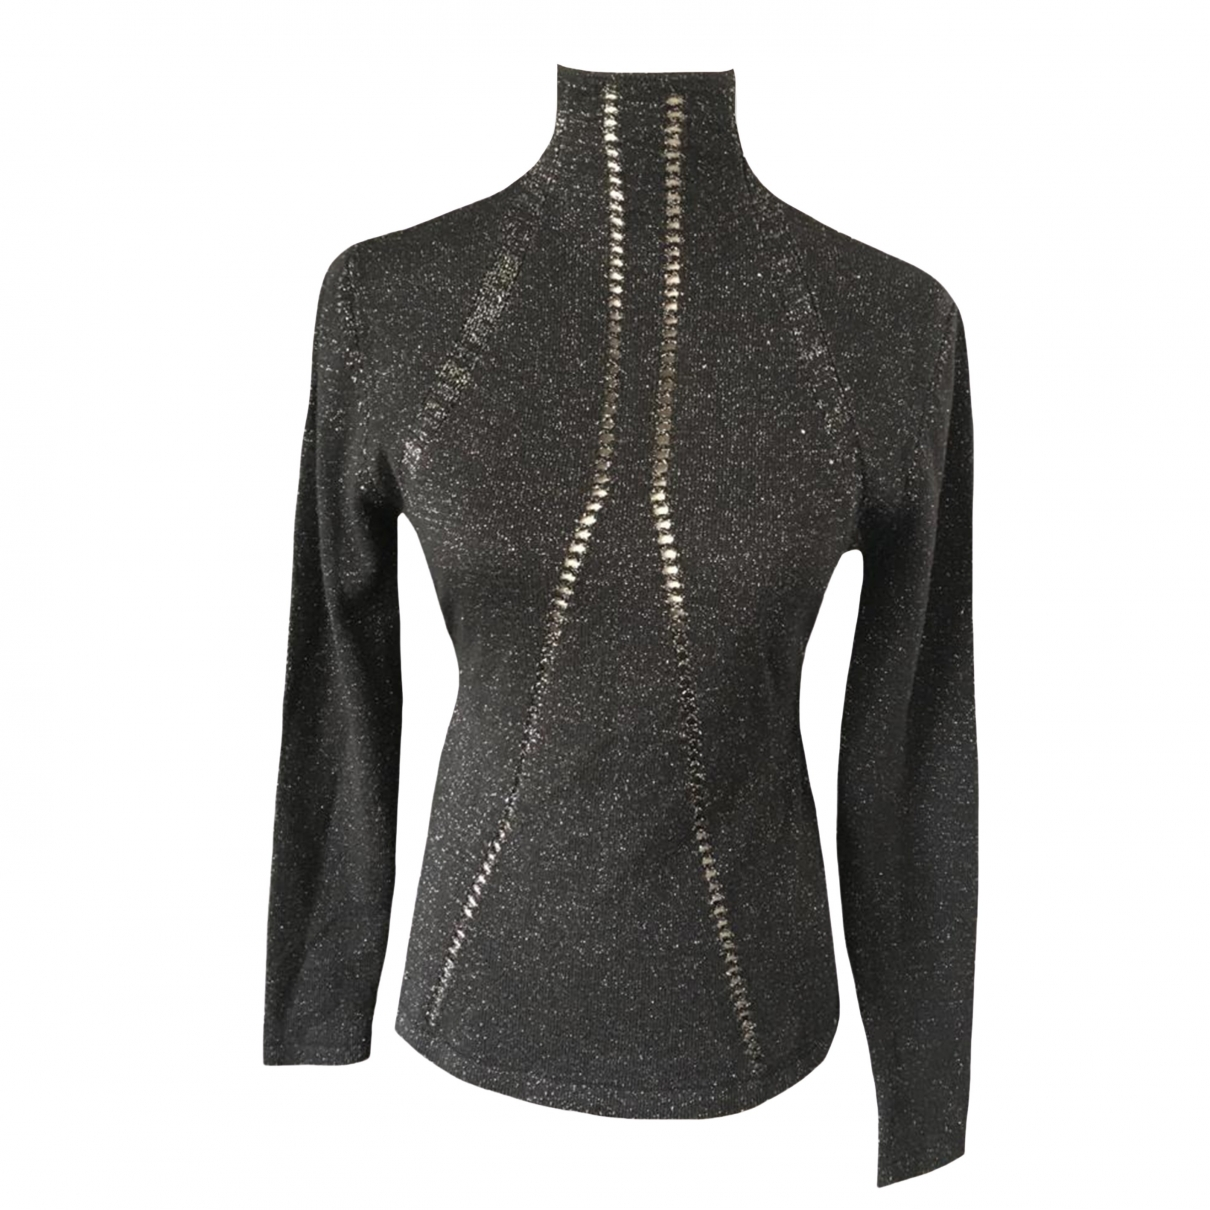 Gianfranco Ferré \N Black Wool  top for Women M International